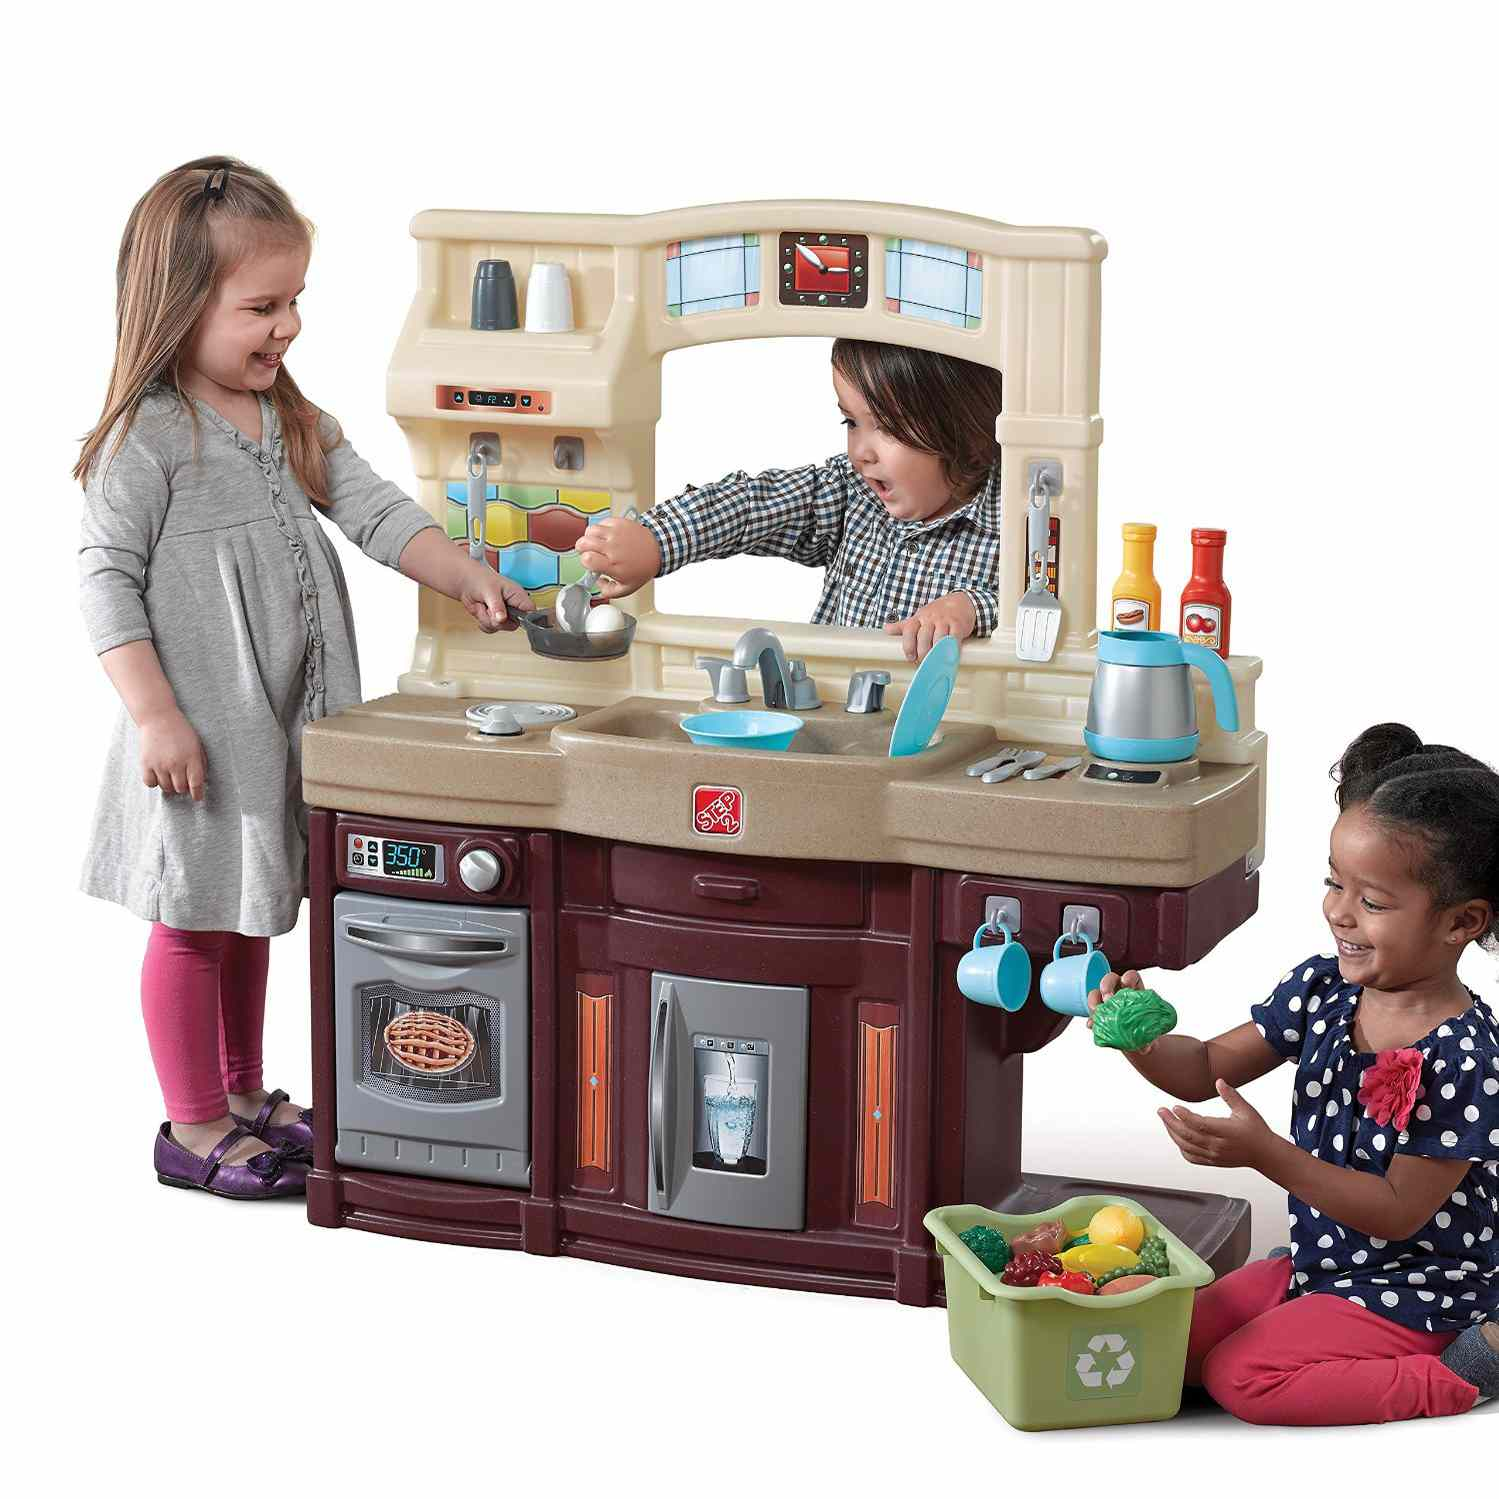 The 10 Best Kitchen Sets for Kids in 2020